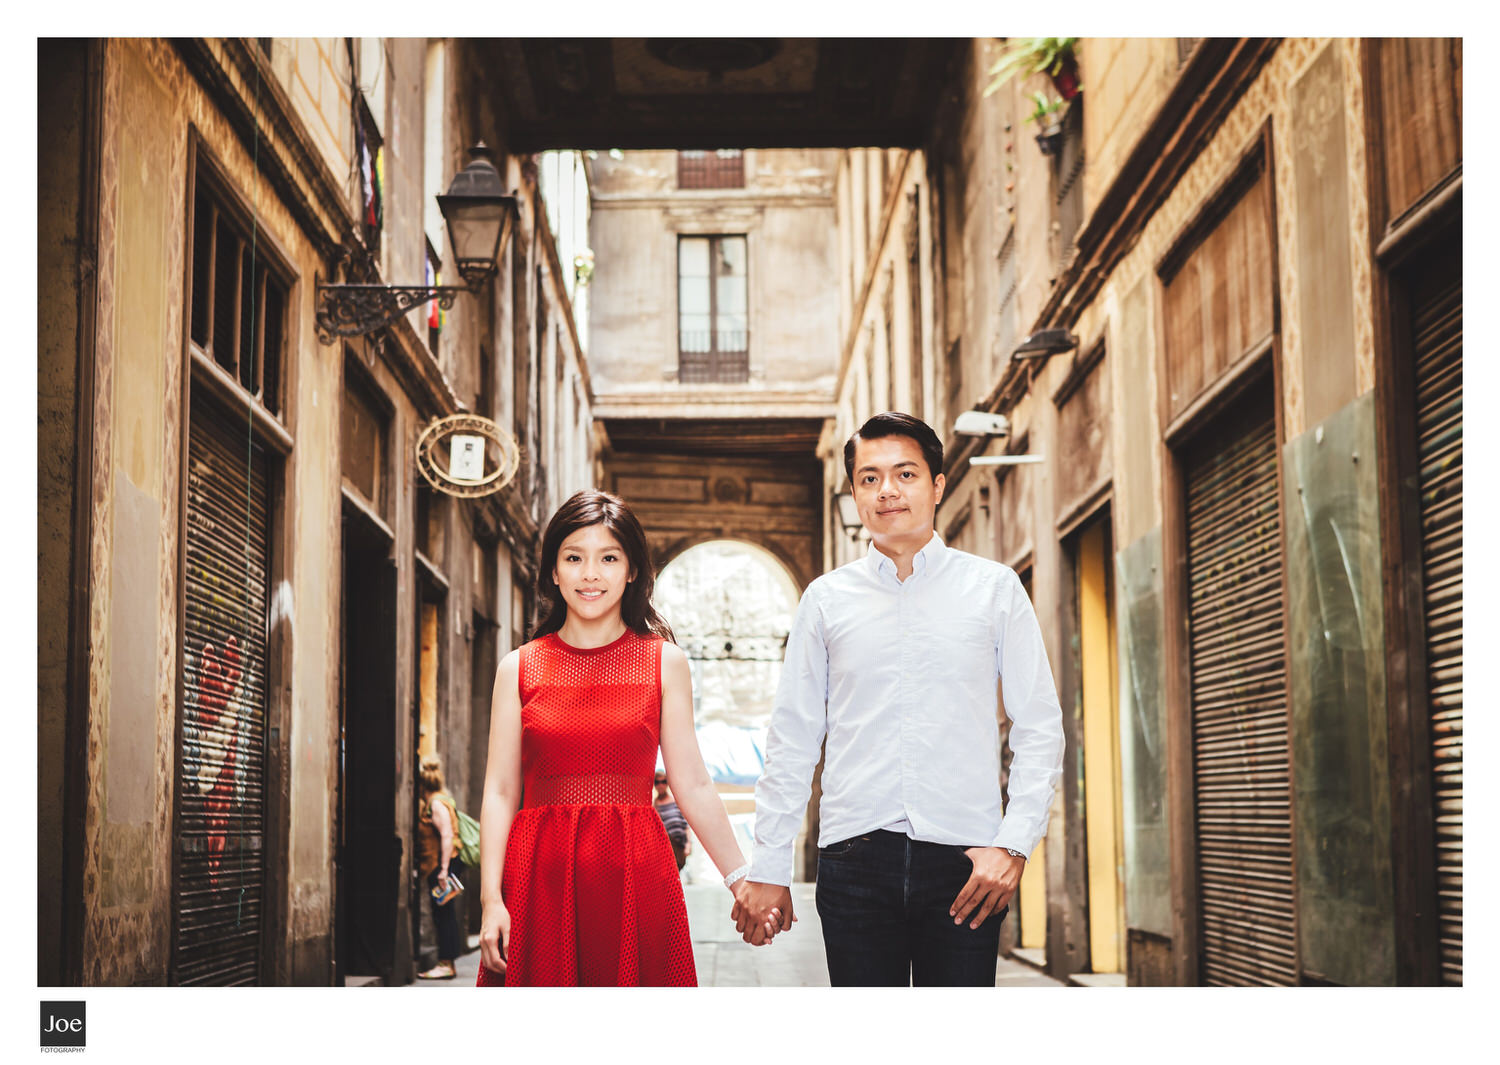 joe-fotography-62-barcelona-federal-cafe-barcelona-gotic-pre-wedding-linda-colin.jpg